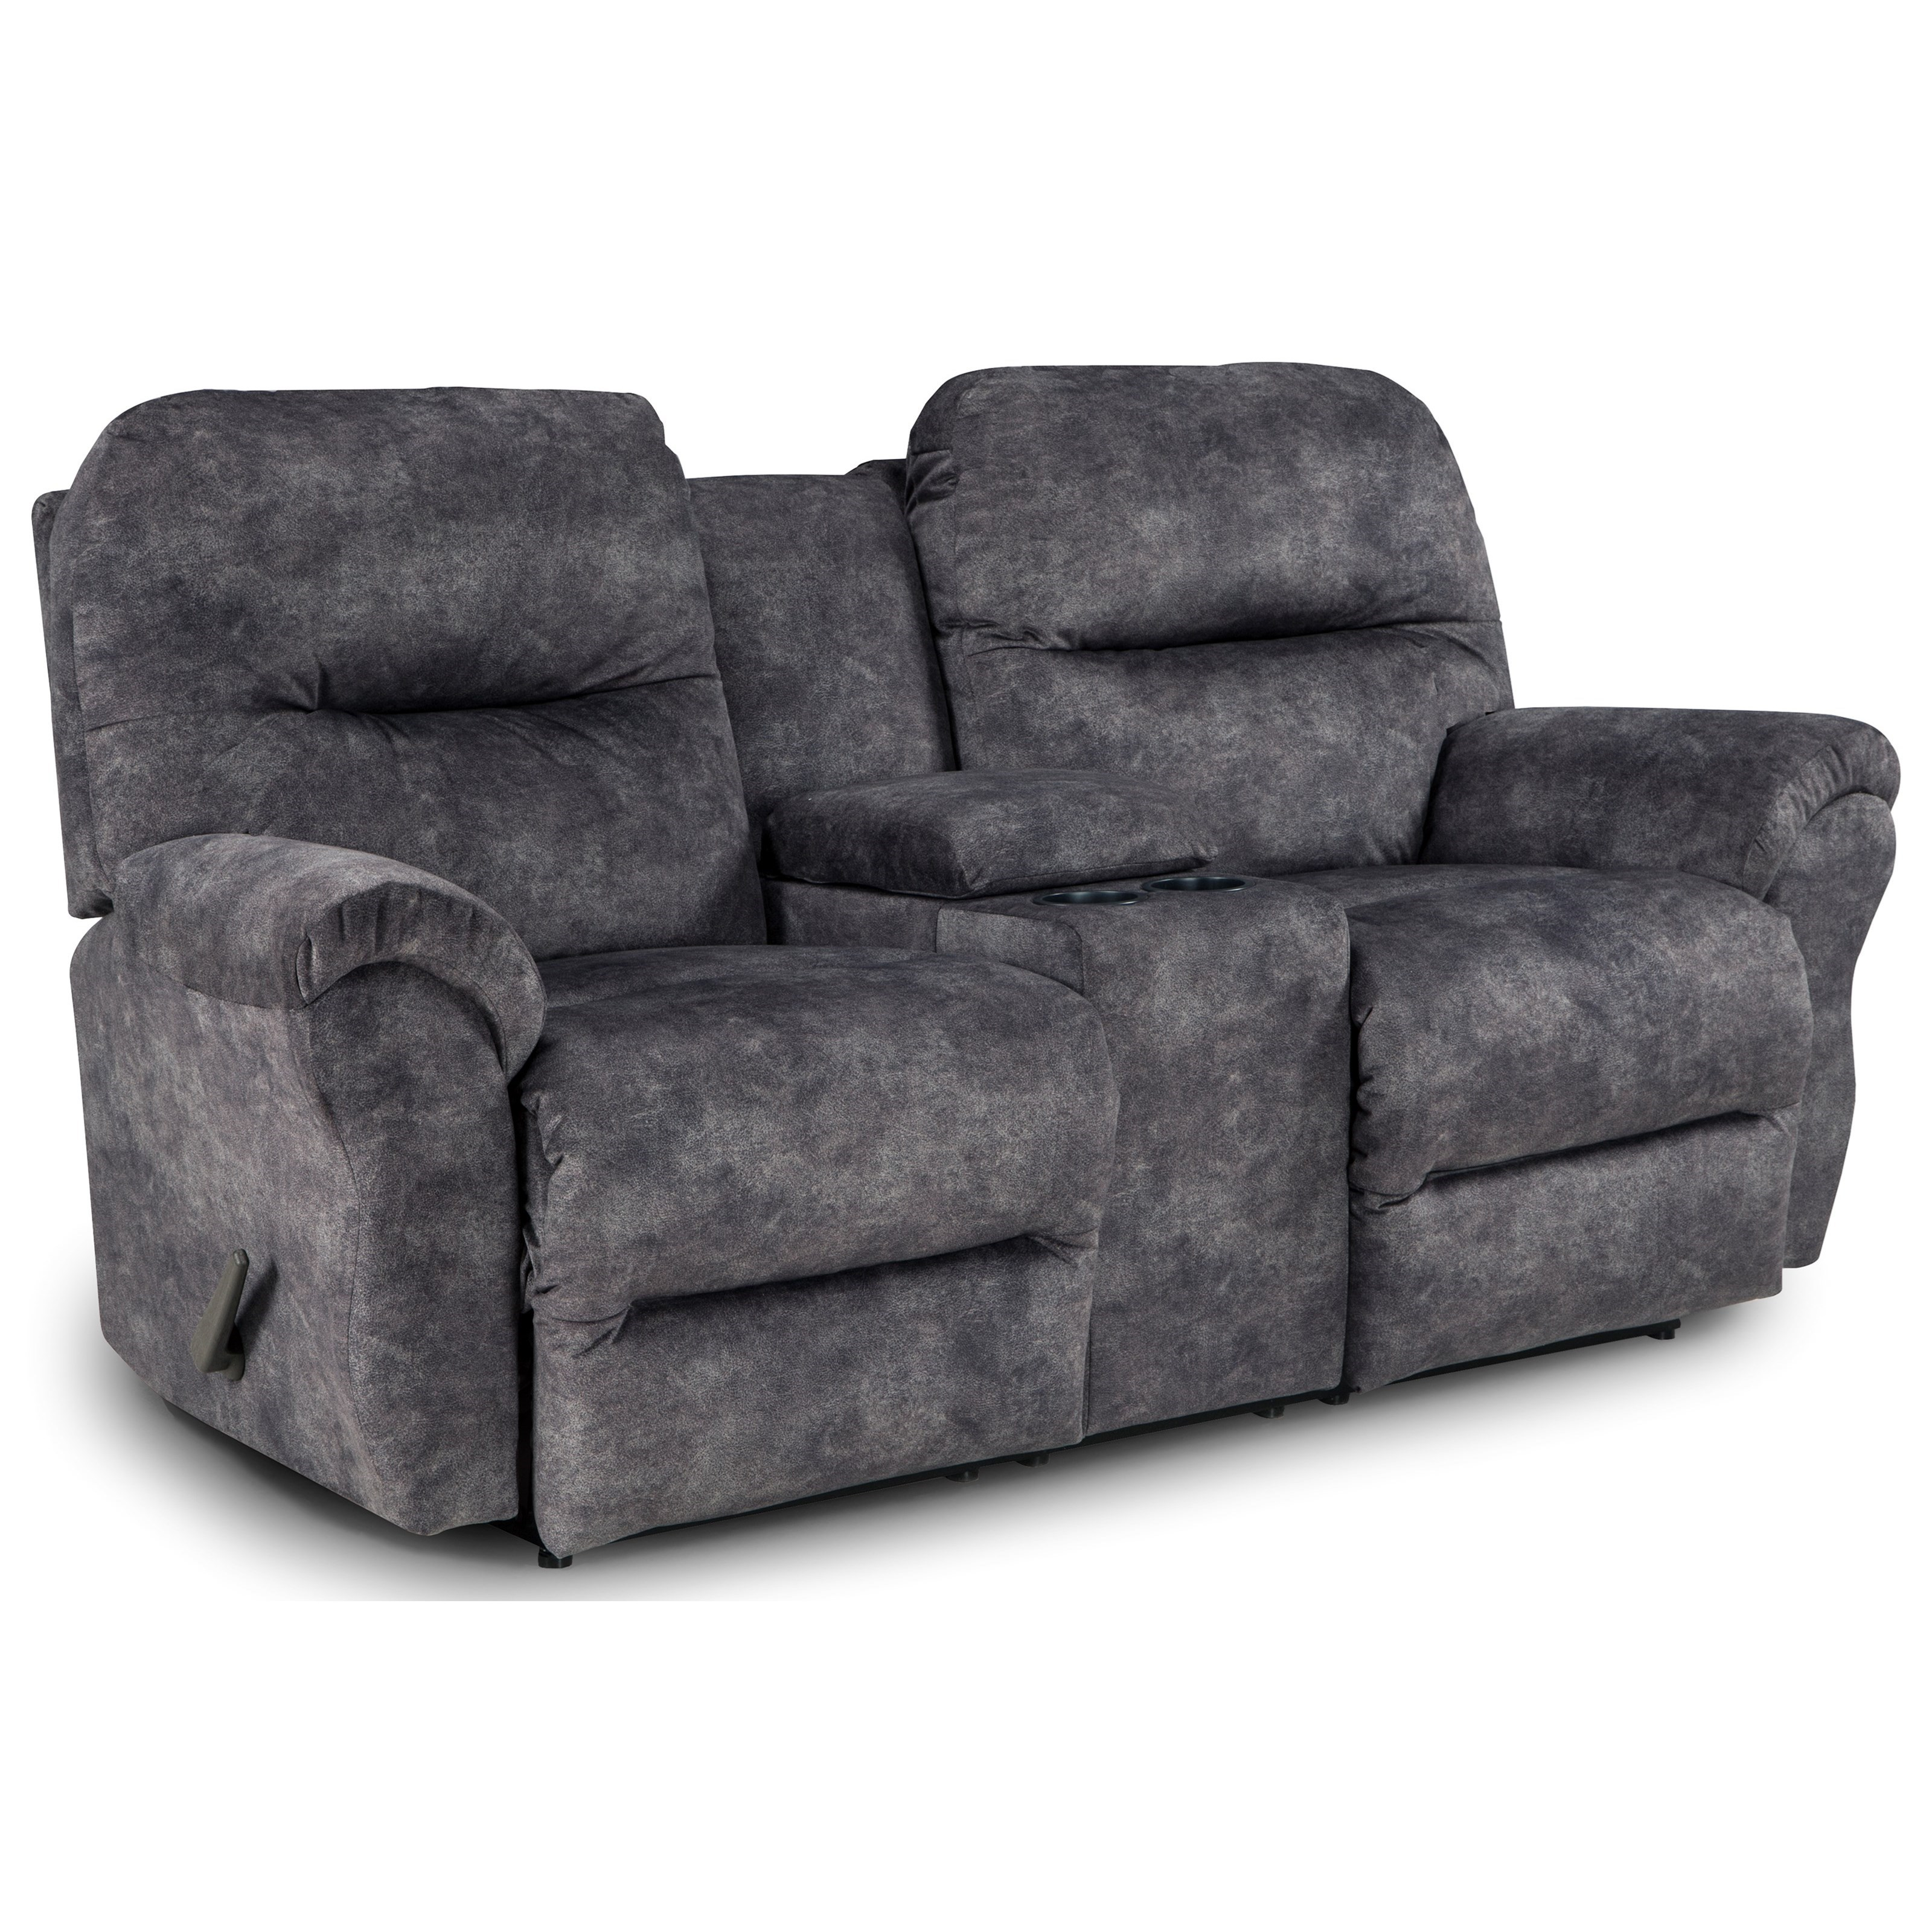 Best Home Furnishings Bodie L760rc4 Reclining Love Seat